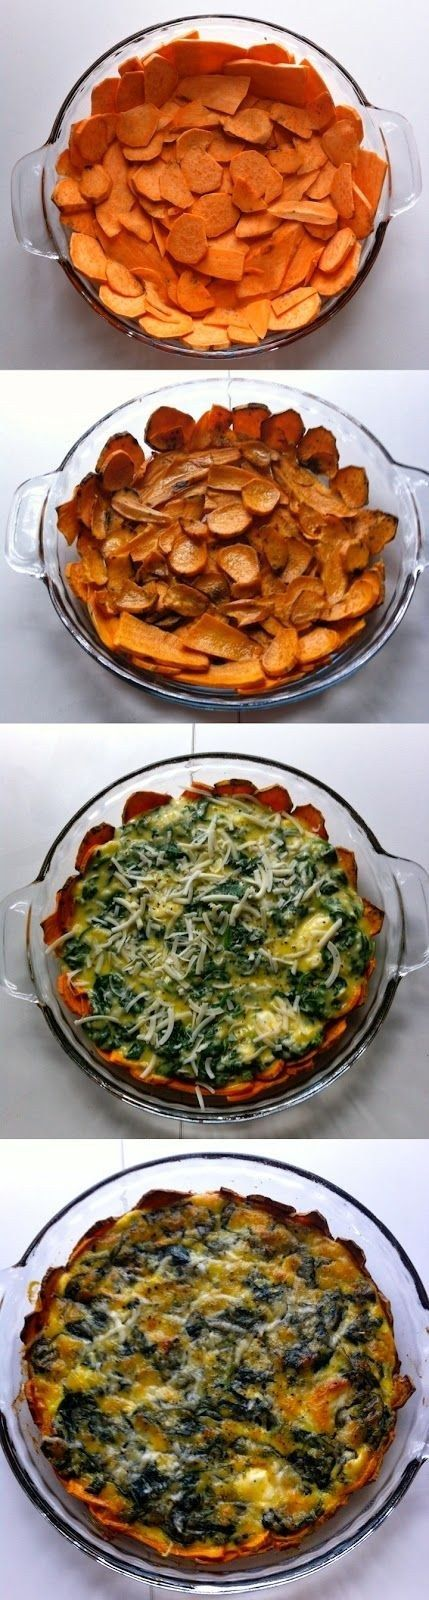 Sweet Potato Crusted Spinach Quiche | 29 Delicious Ways To Eat More Vegetables